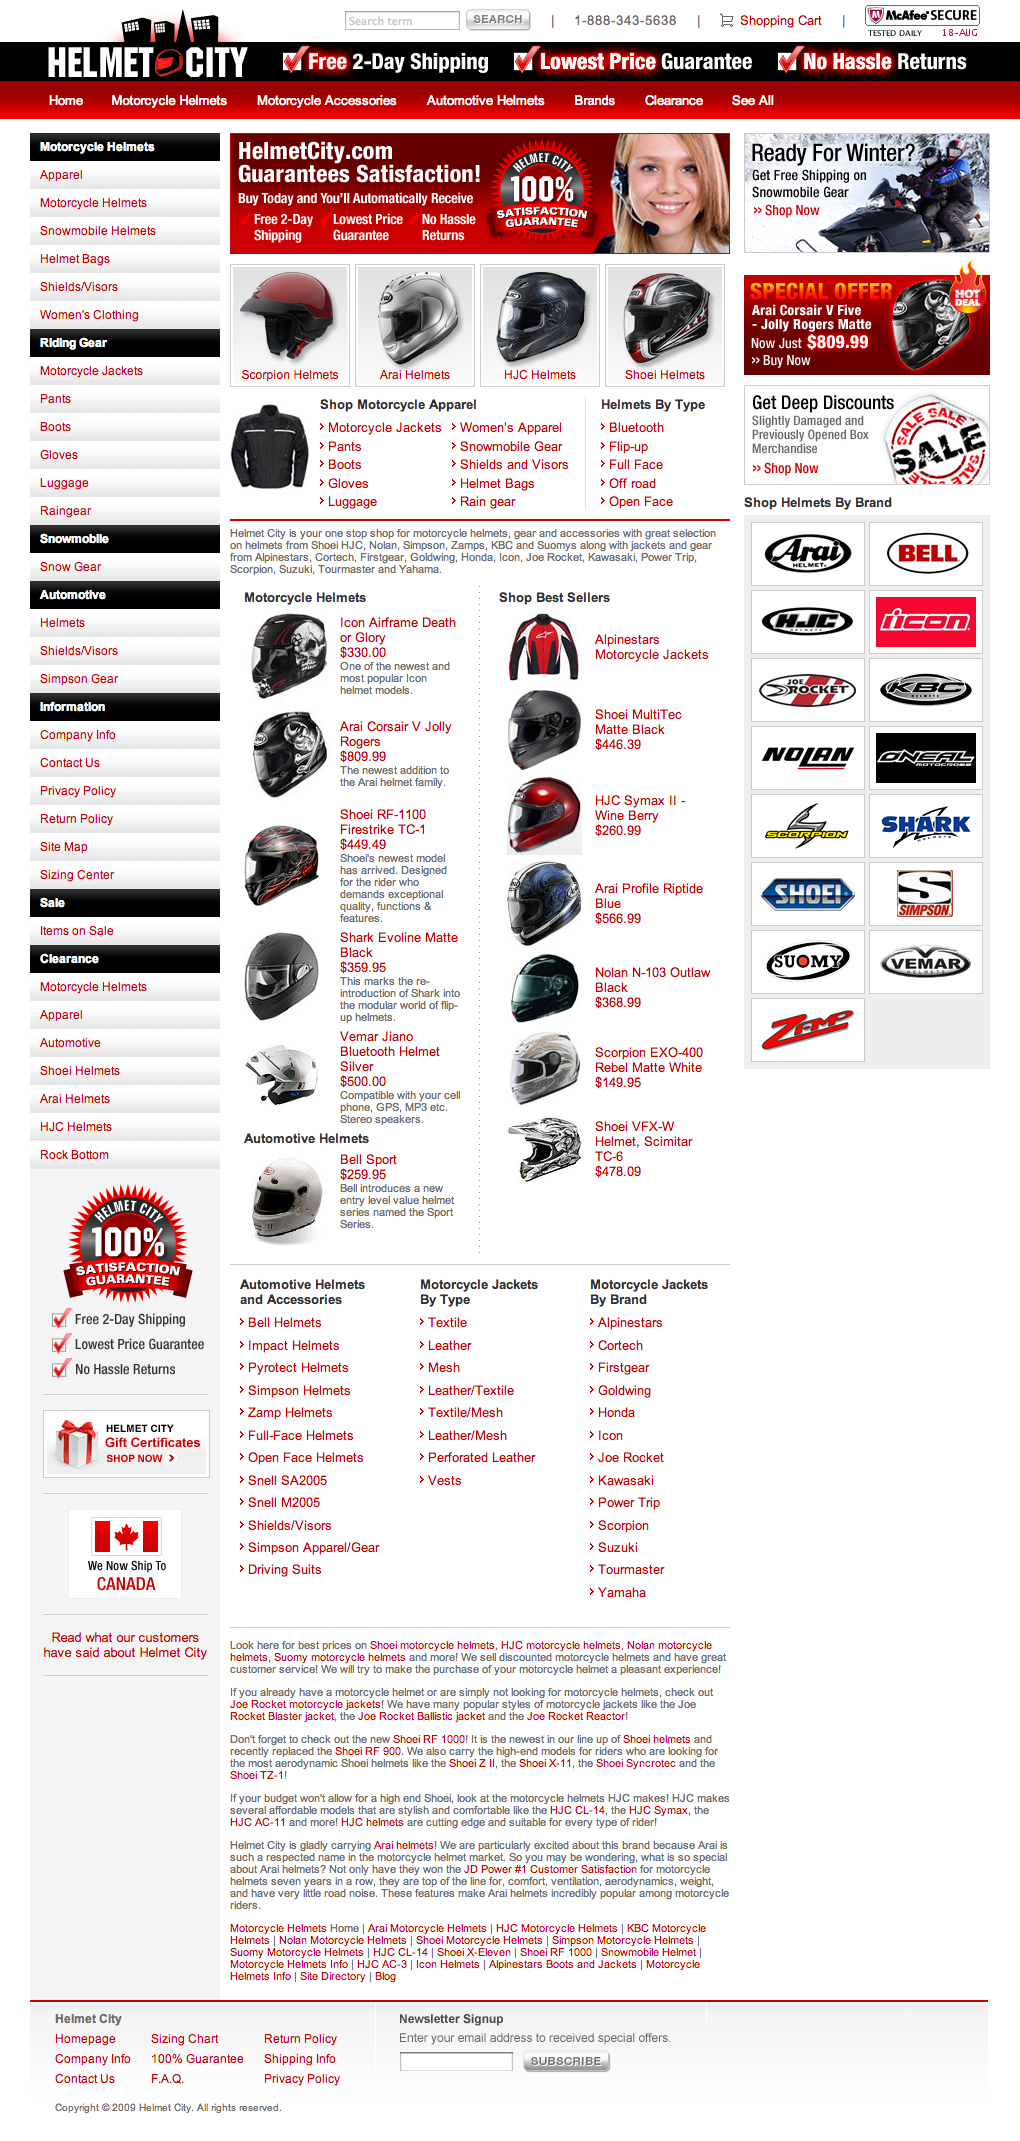 HelmetCity.com Ecommerce Website Redesign